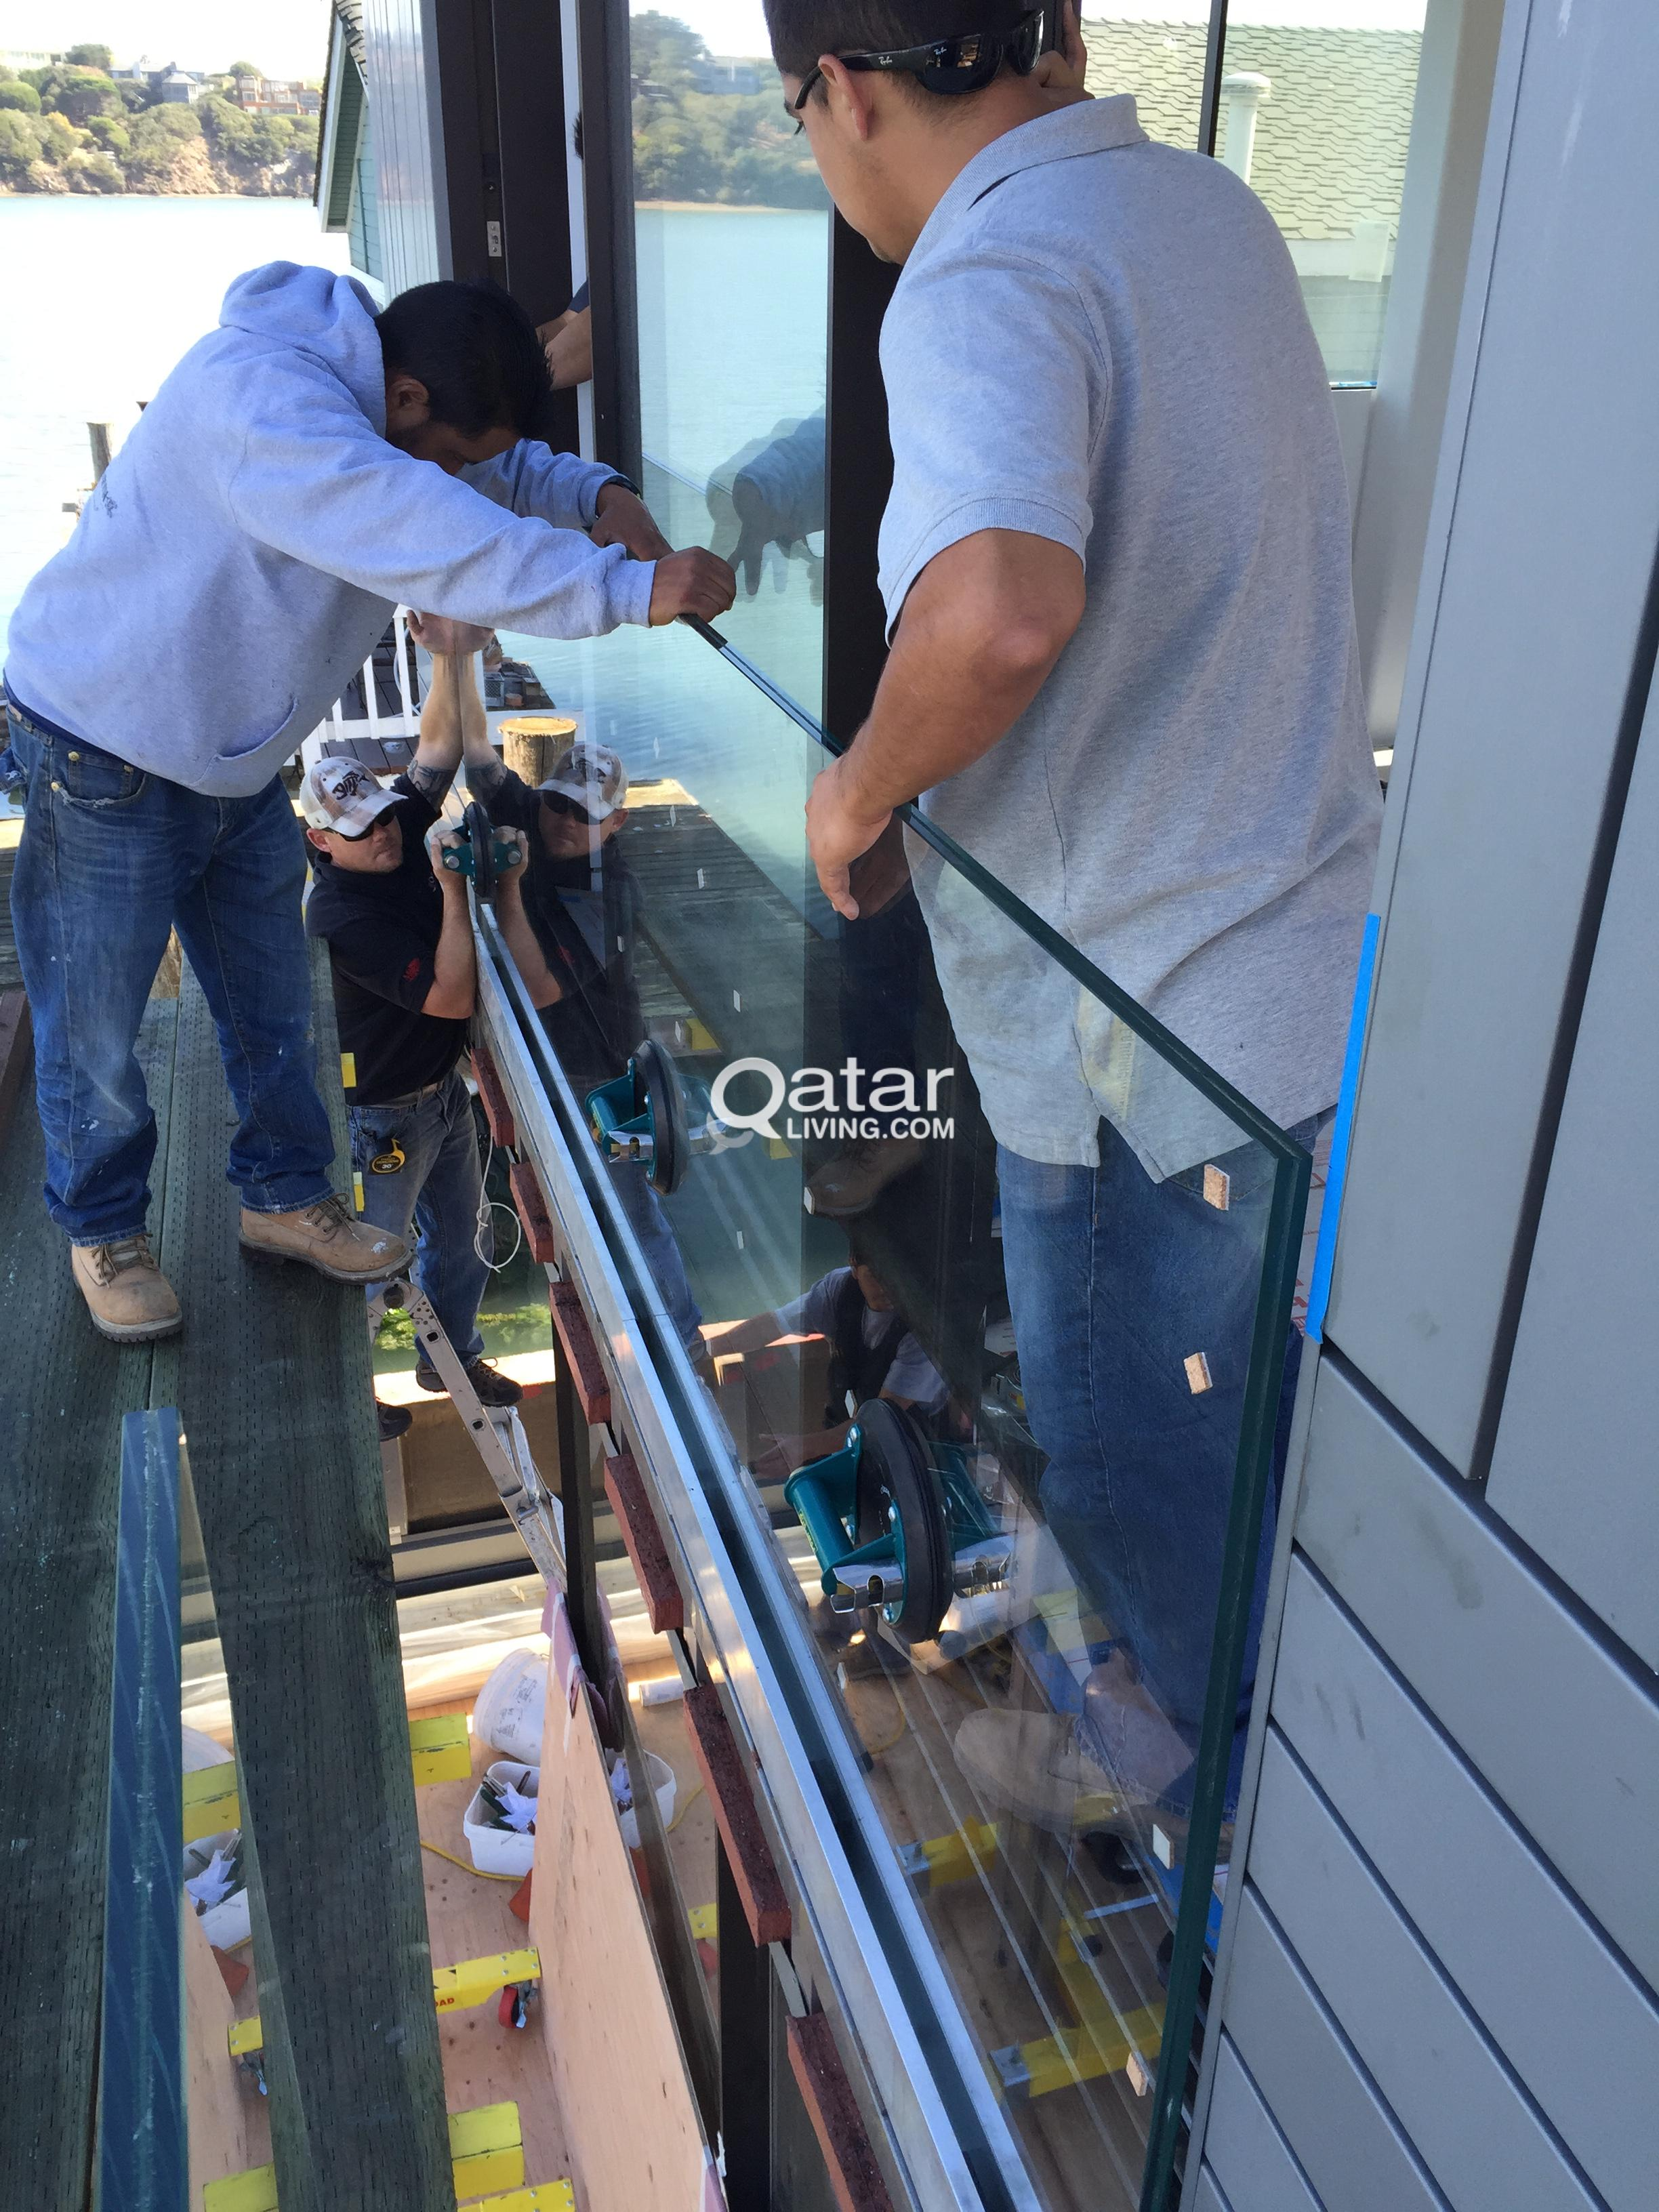 Glass Installation , Aluminum Fabrication & Painting | Qatar Living